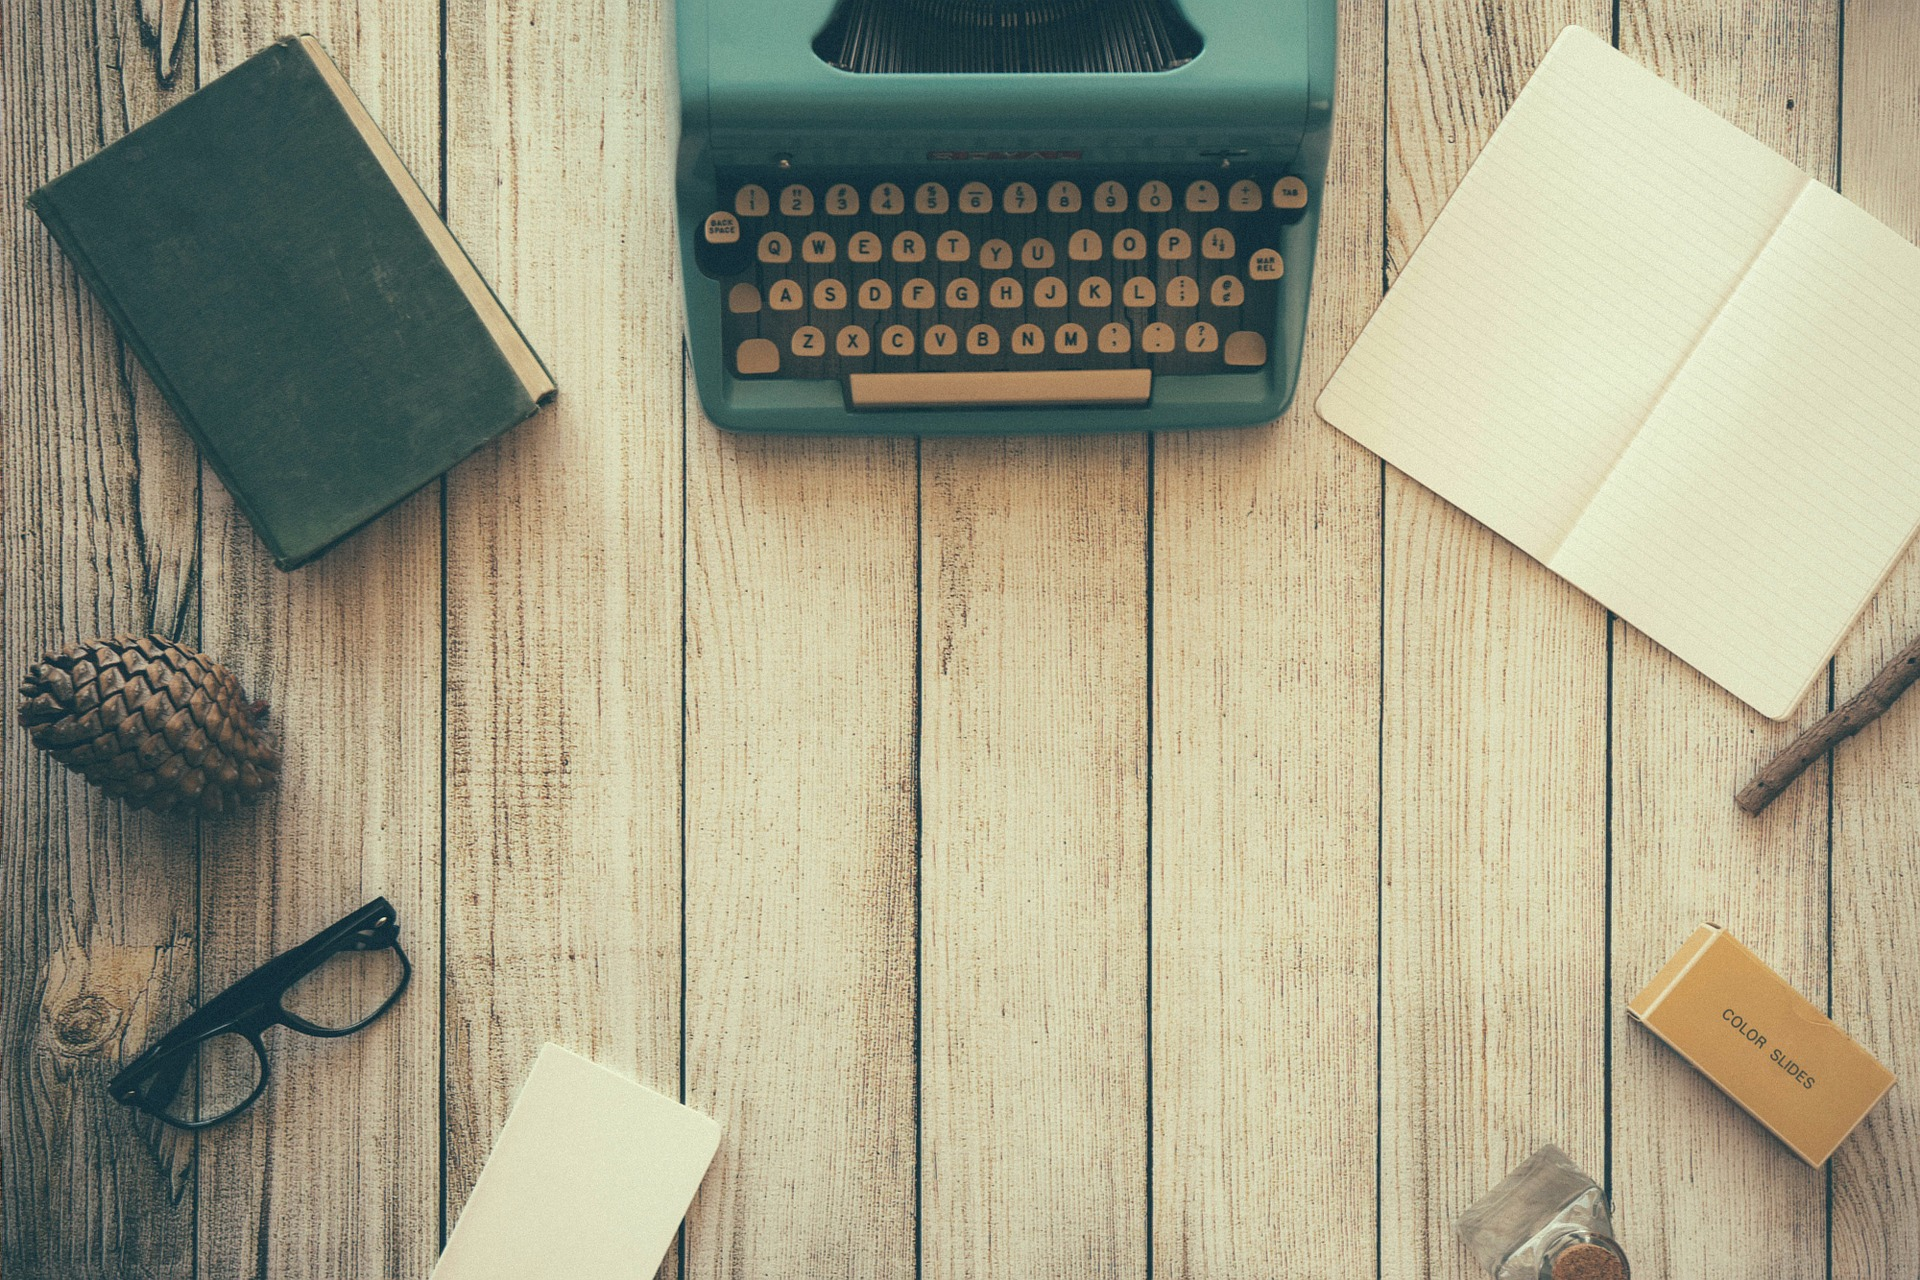 The Ethics of Hiring a Ghostwriter